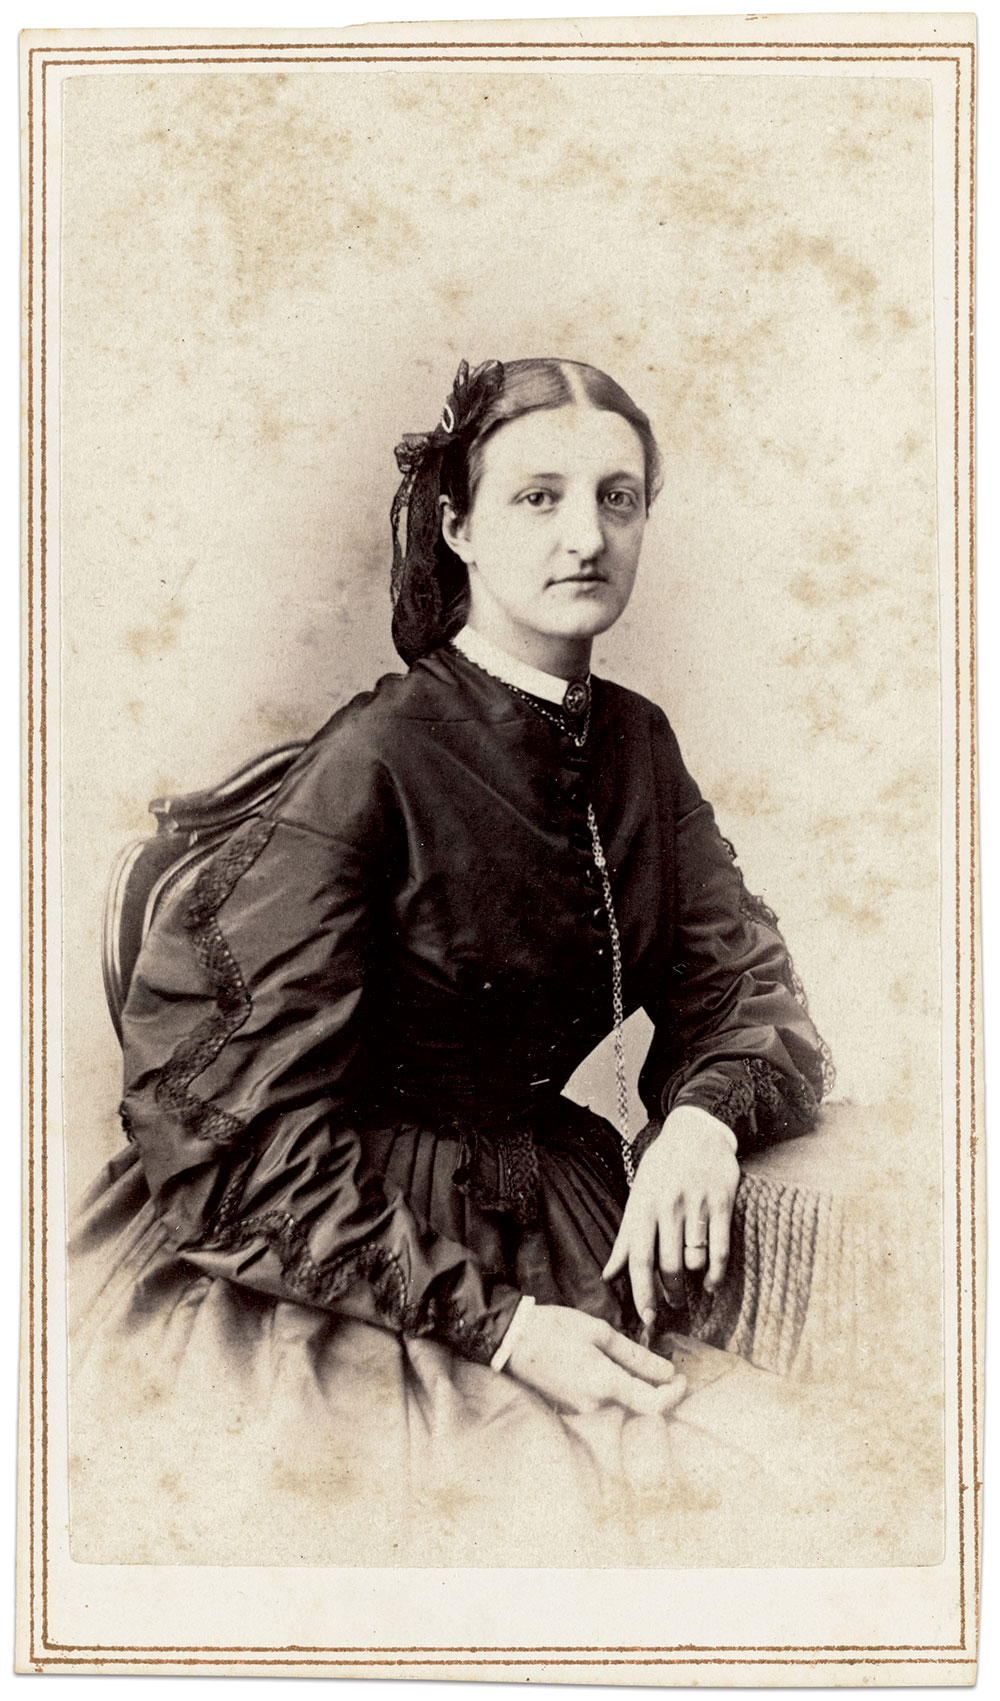 Georgiana Willets Stradling. Carte de visite by Charles D. Fredricks of New York City. Collection of the Library of Congress and the National Museum of African American History & Culture.